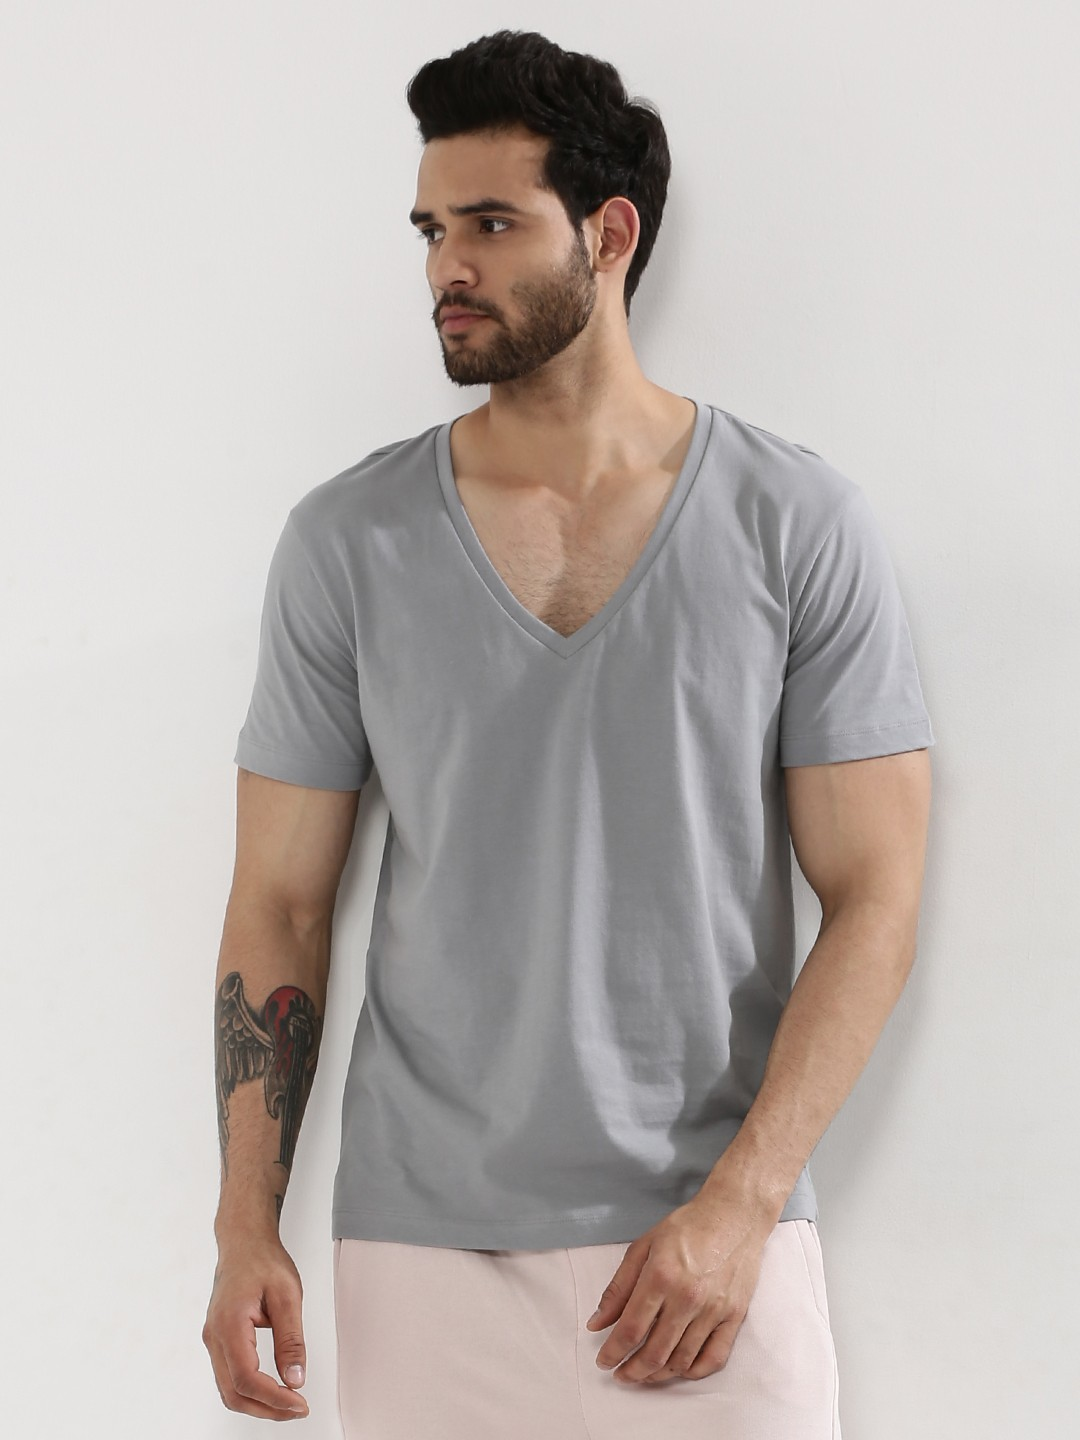 Browse the selection of v neck t shirts for men at onelainsex.ml and receive free shipping.